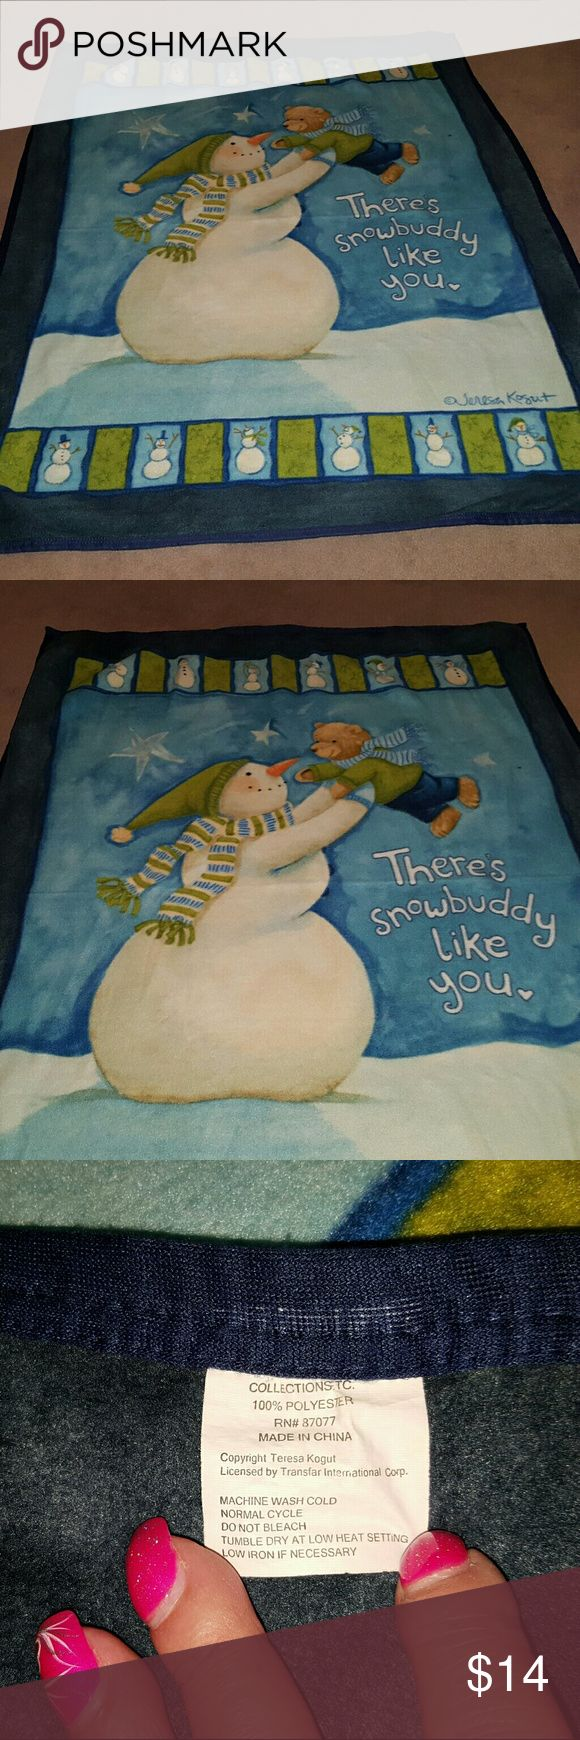 Collections ect. 50x62 Snowman Fluffy Throw. A 50x62 collections very fluffy and soft throw with a cute snowman on it holding a sweet little teddy bear. It reads  There's snowbuddy like you. This is just the right size to throw over your lap on those chilled nights watching TV, or a great size for a young child makes a great gift. Other